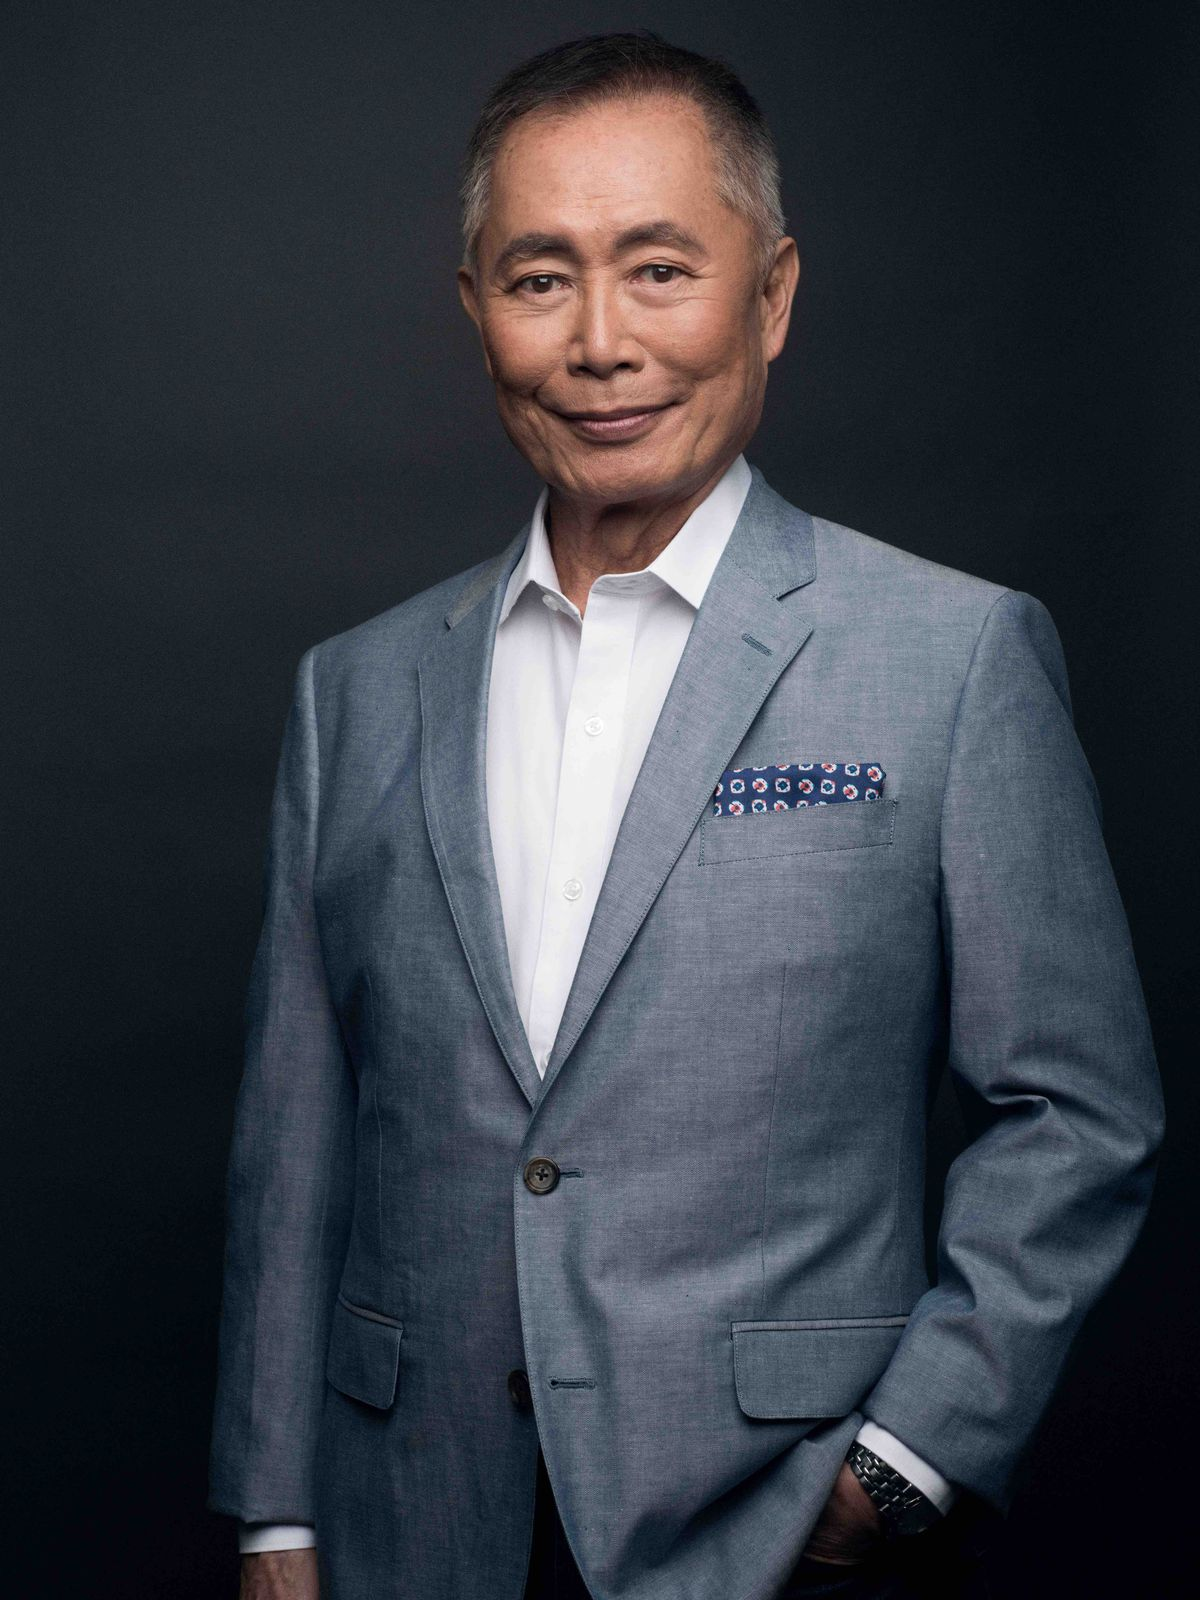 """George Takei hopes the pop culture factor of """"Galaxy's Greatest Hits"""" will broaden the concert's appeal beyond audiences who would typically attend a symphony concert."""